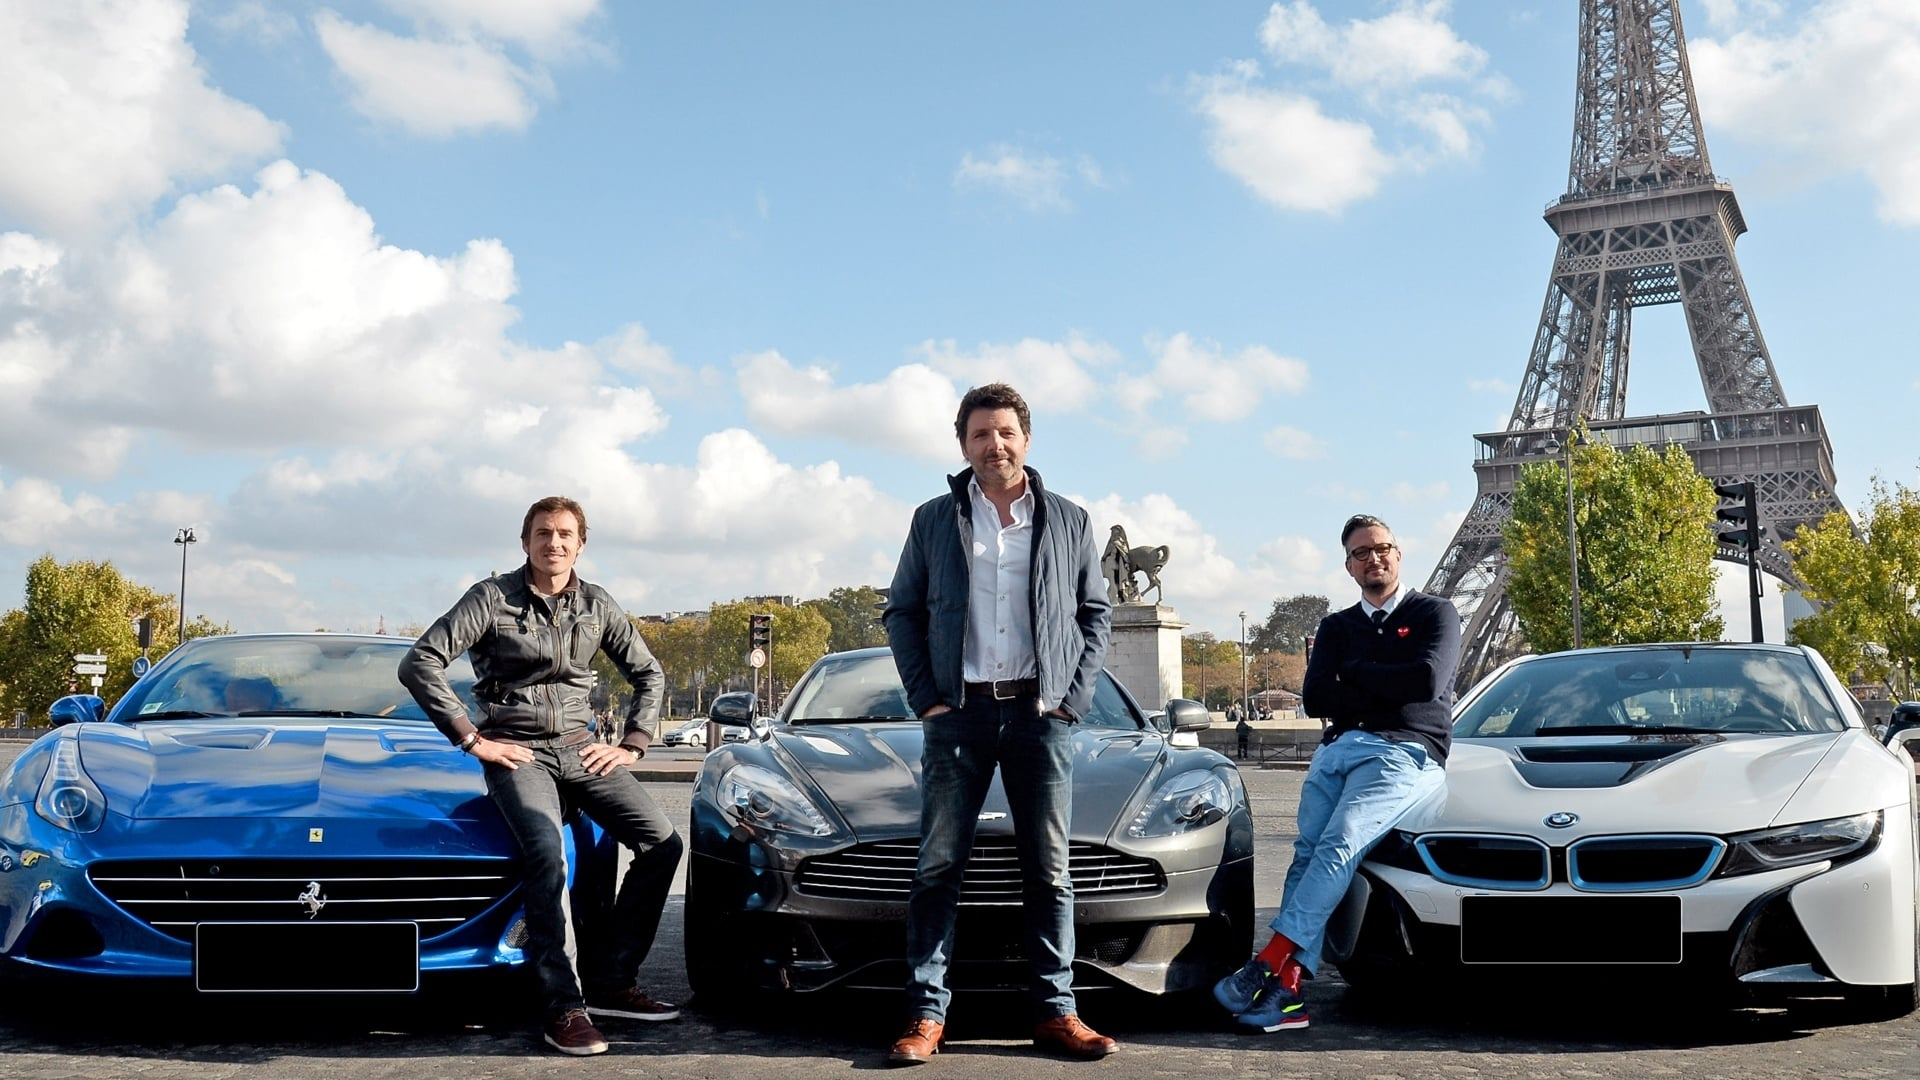 Top Gear France - Season 6 Episode 5 : Episode 5